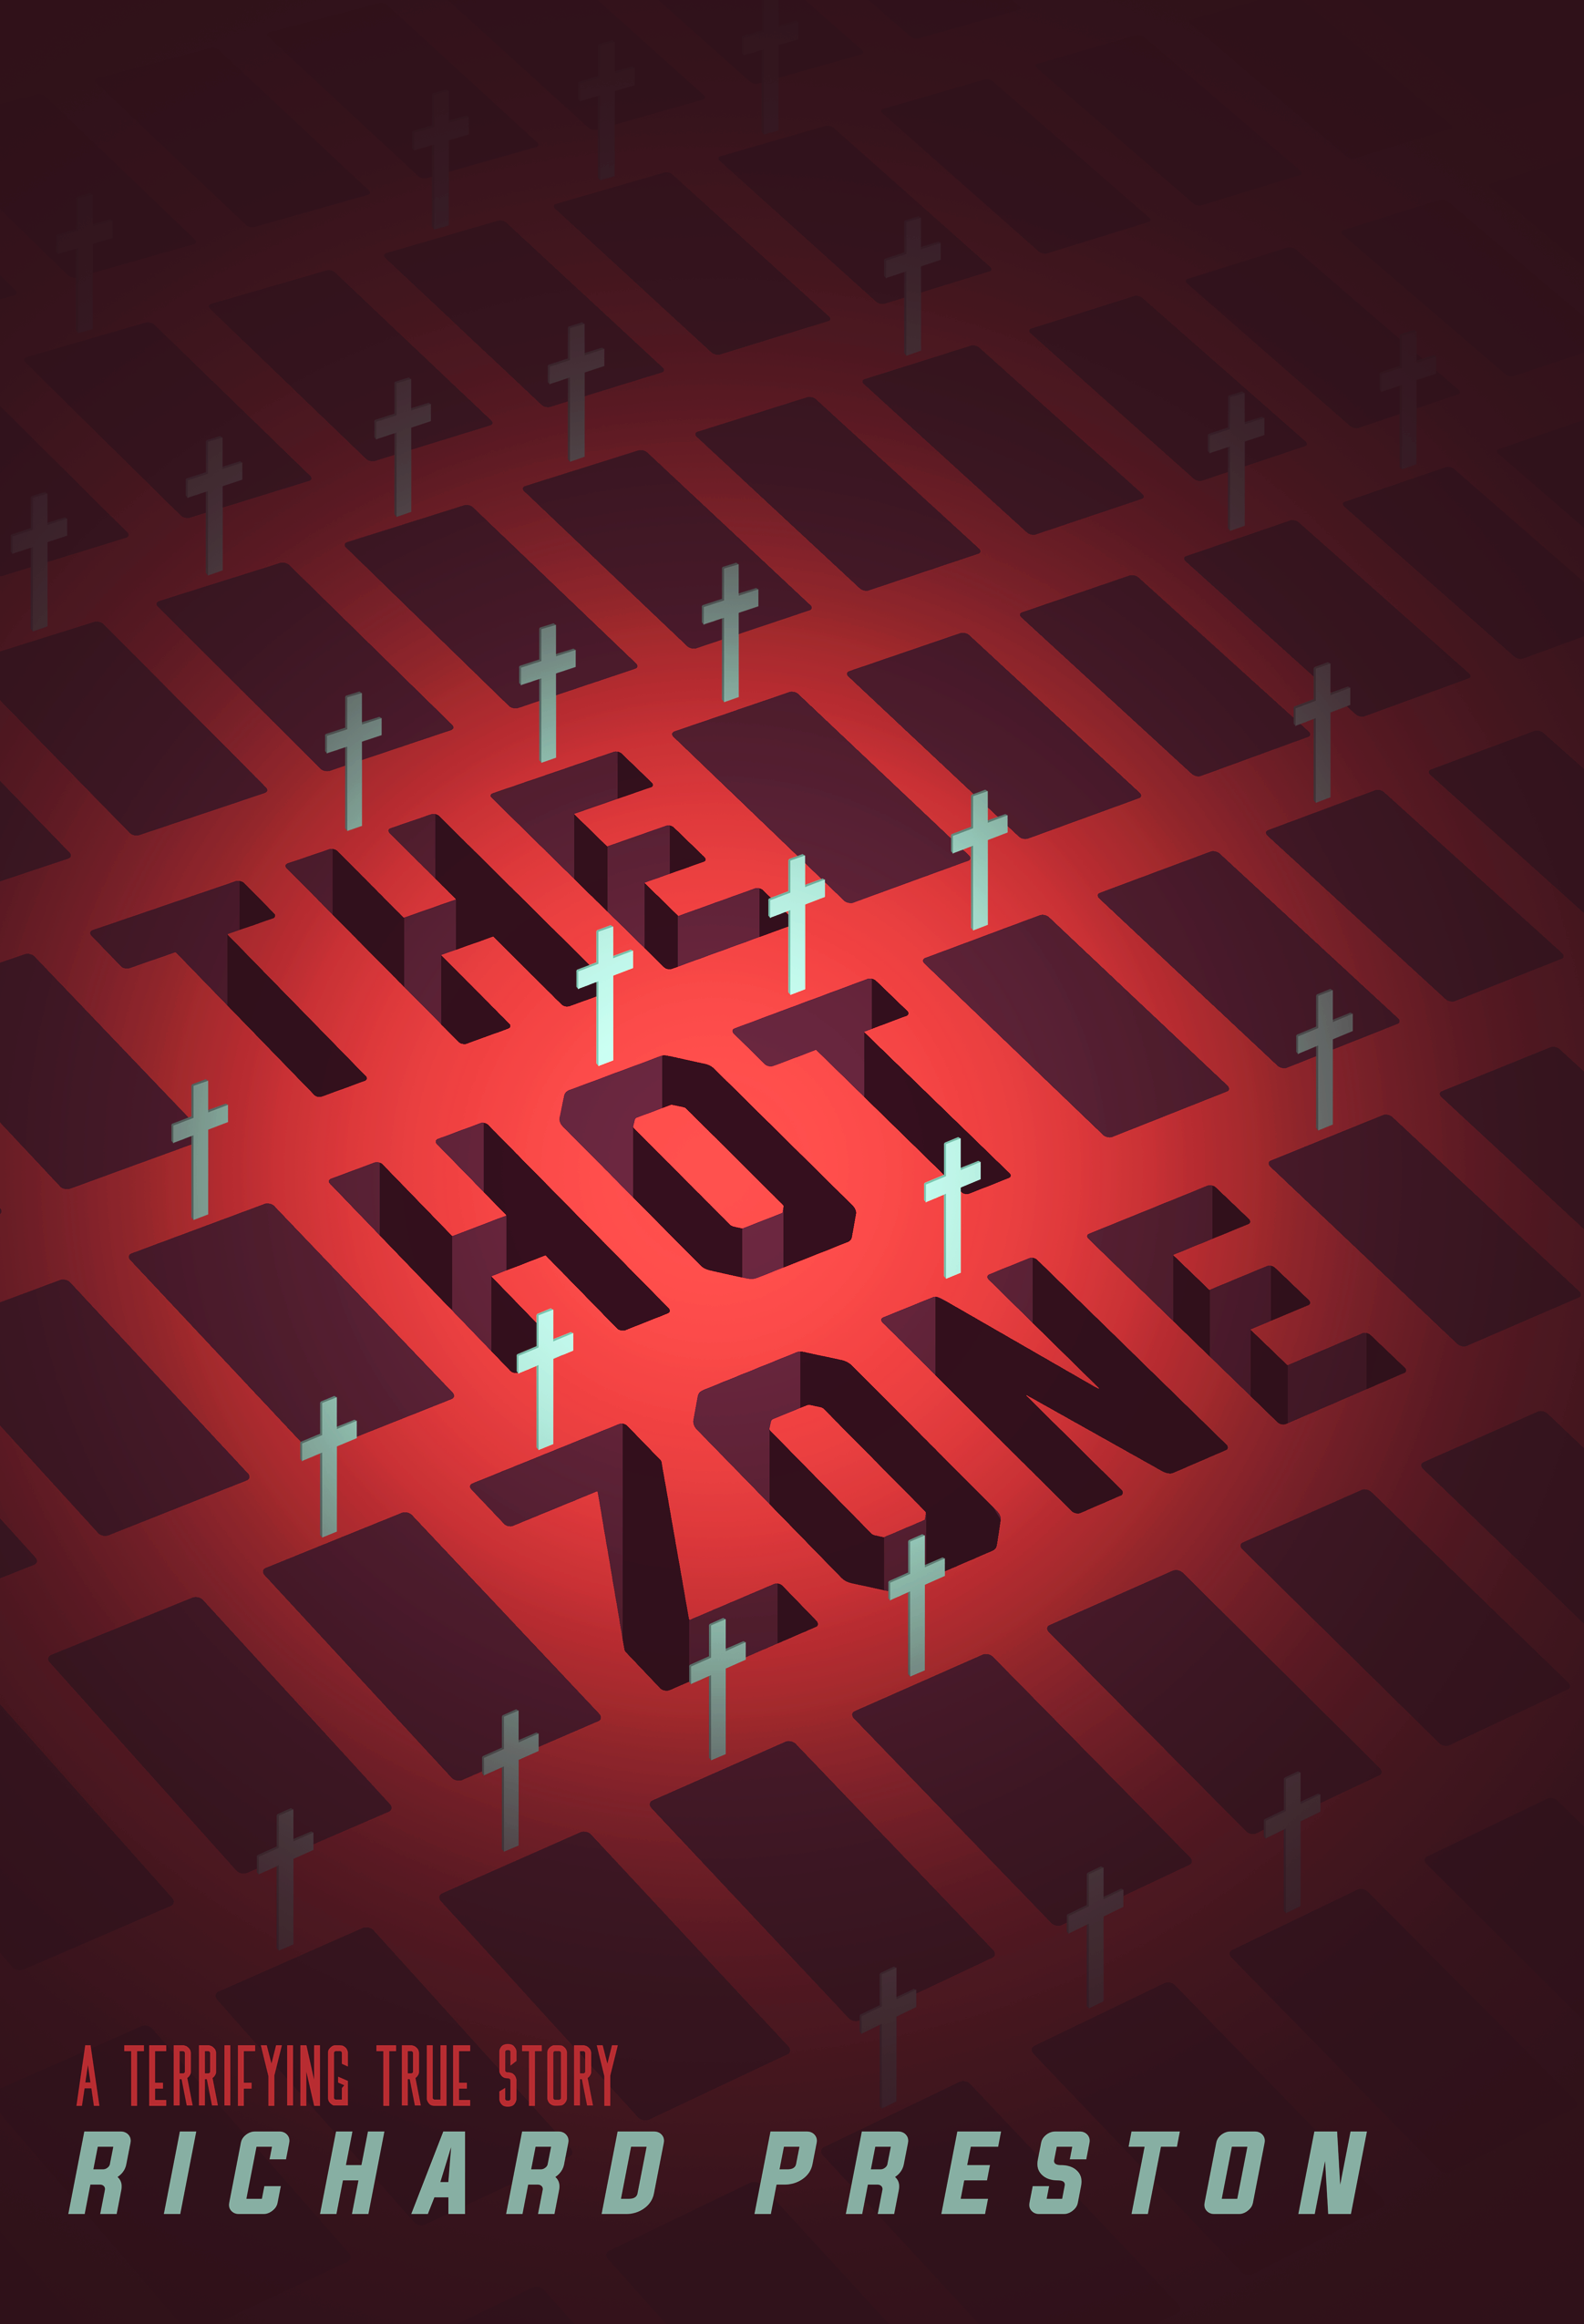 THE HOT ZONE - BOOK COVER DESIGN